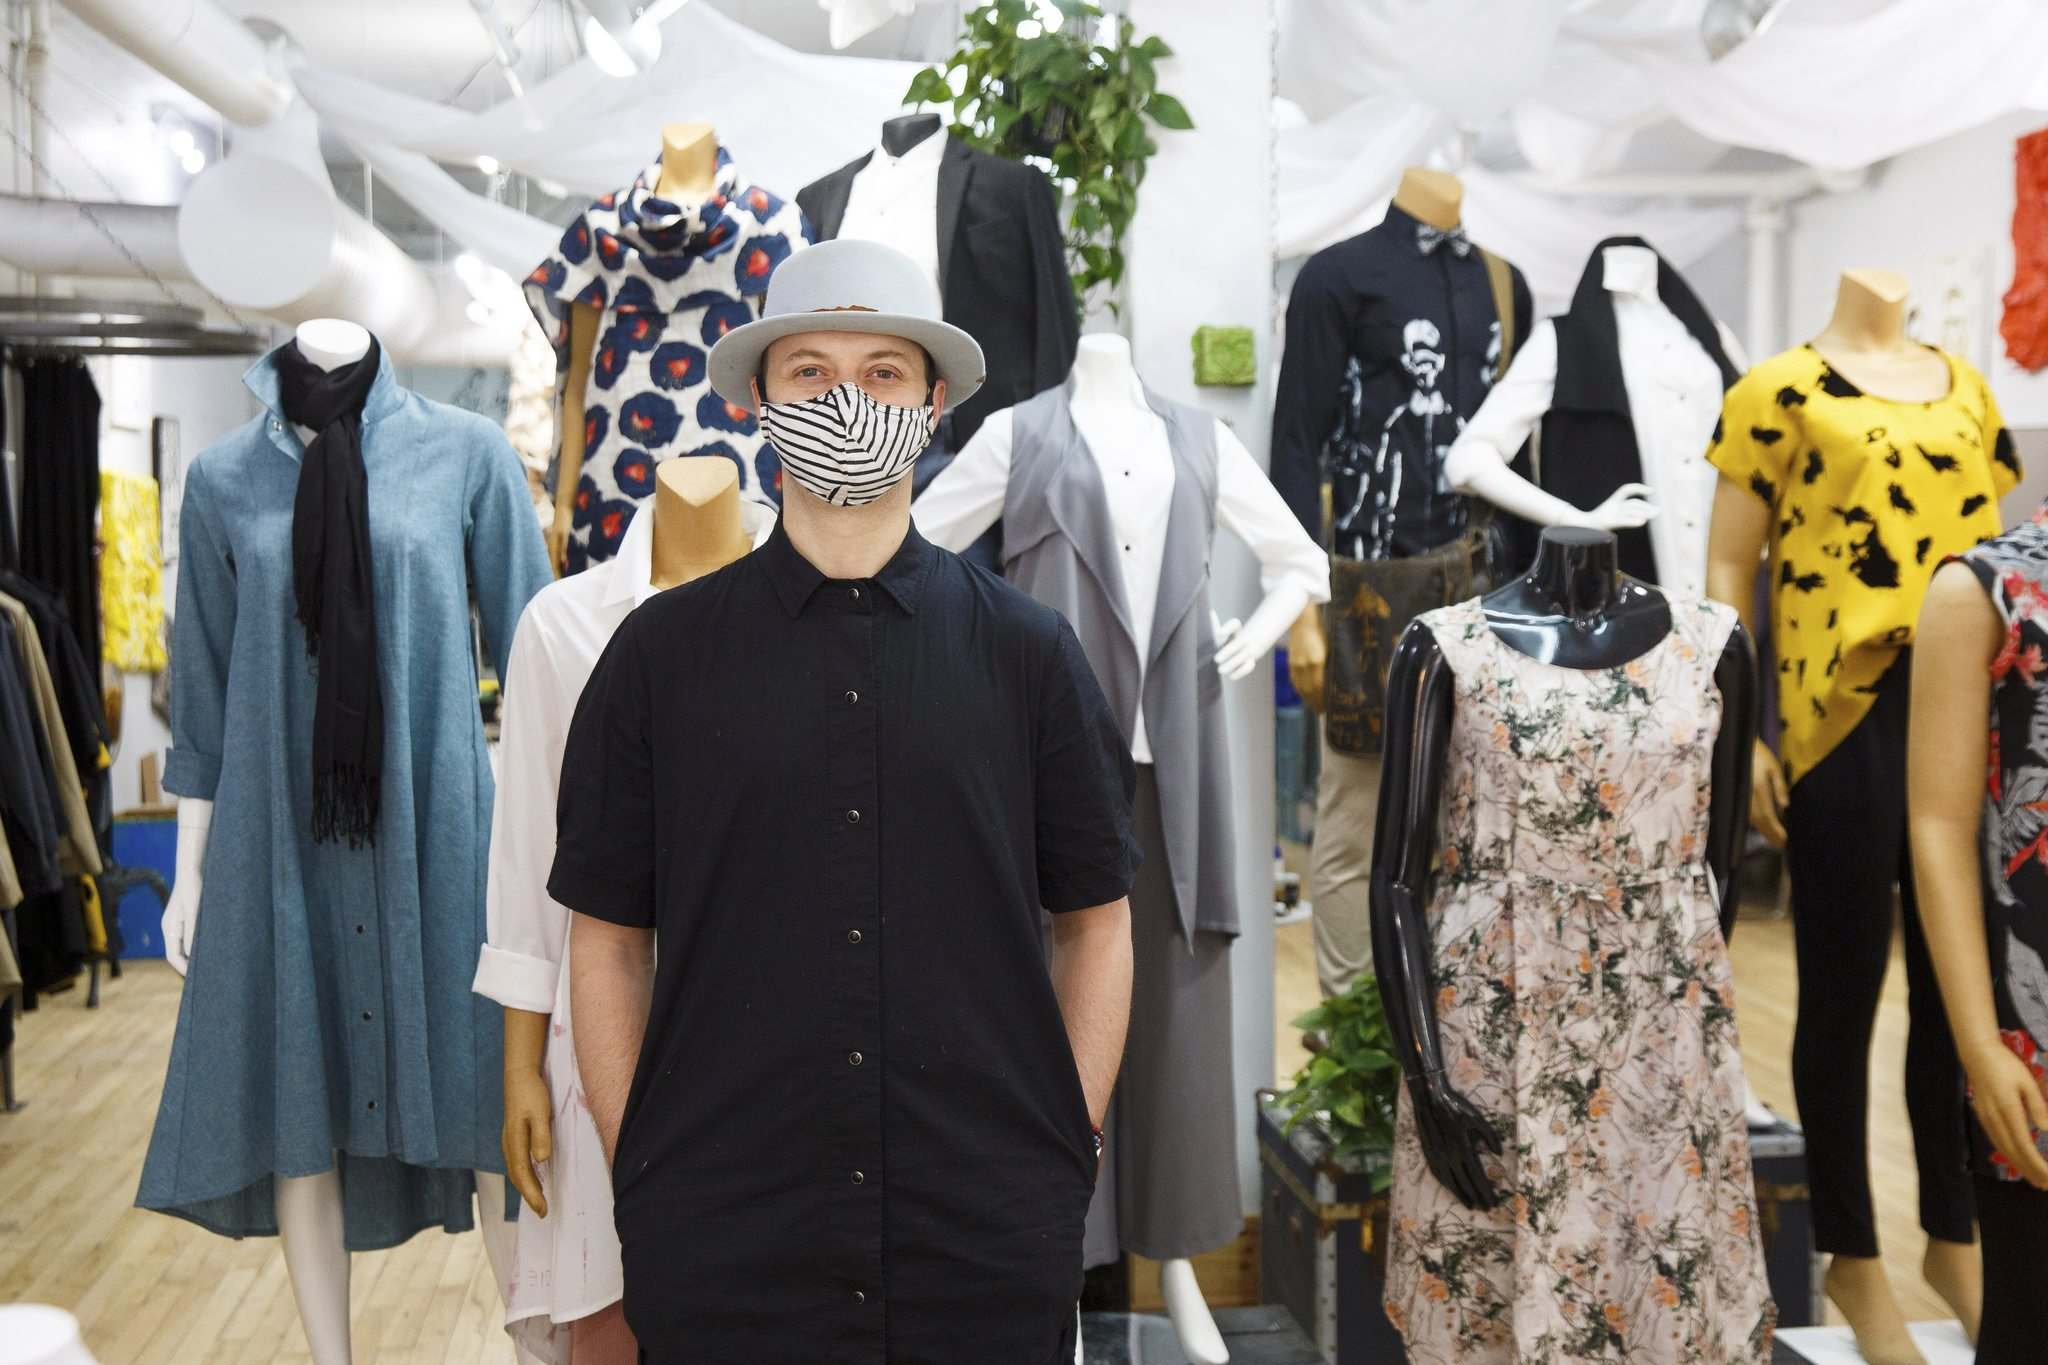 MIKE DEAL / WINNIPEG FREE PRESS</p><p>Fashion designer Lennard Taylor is also making masks in his Exchange District store.</p>